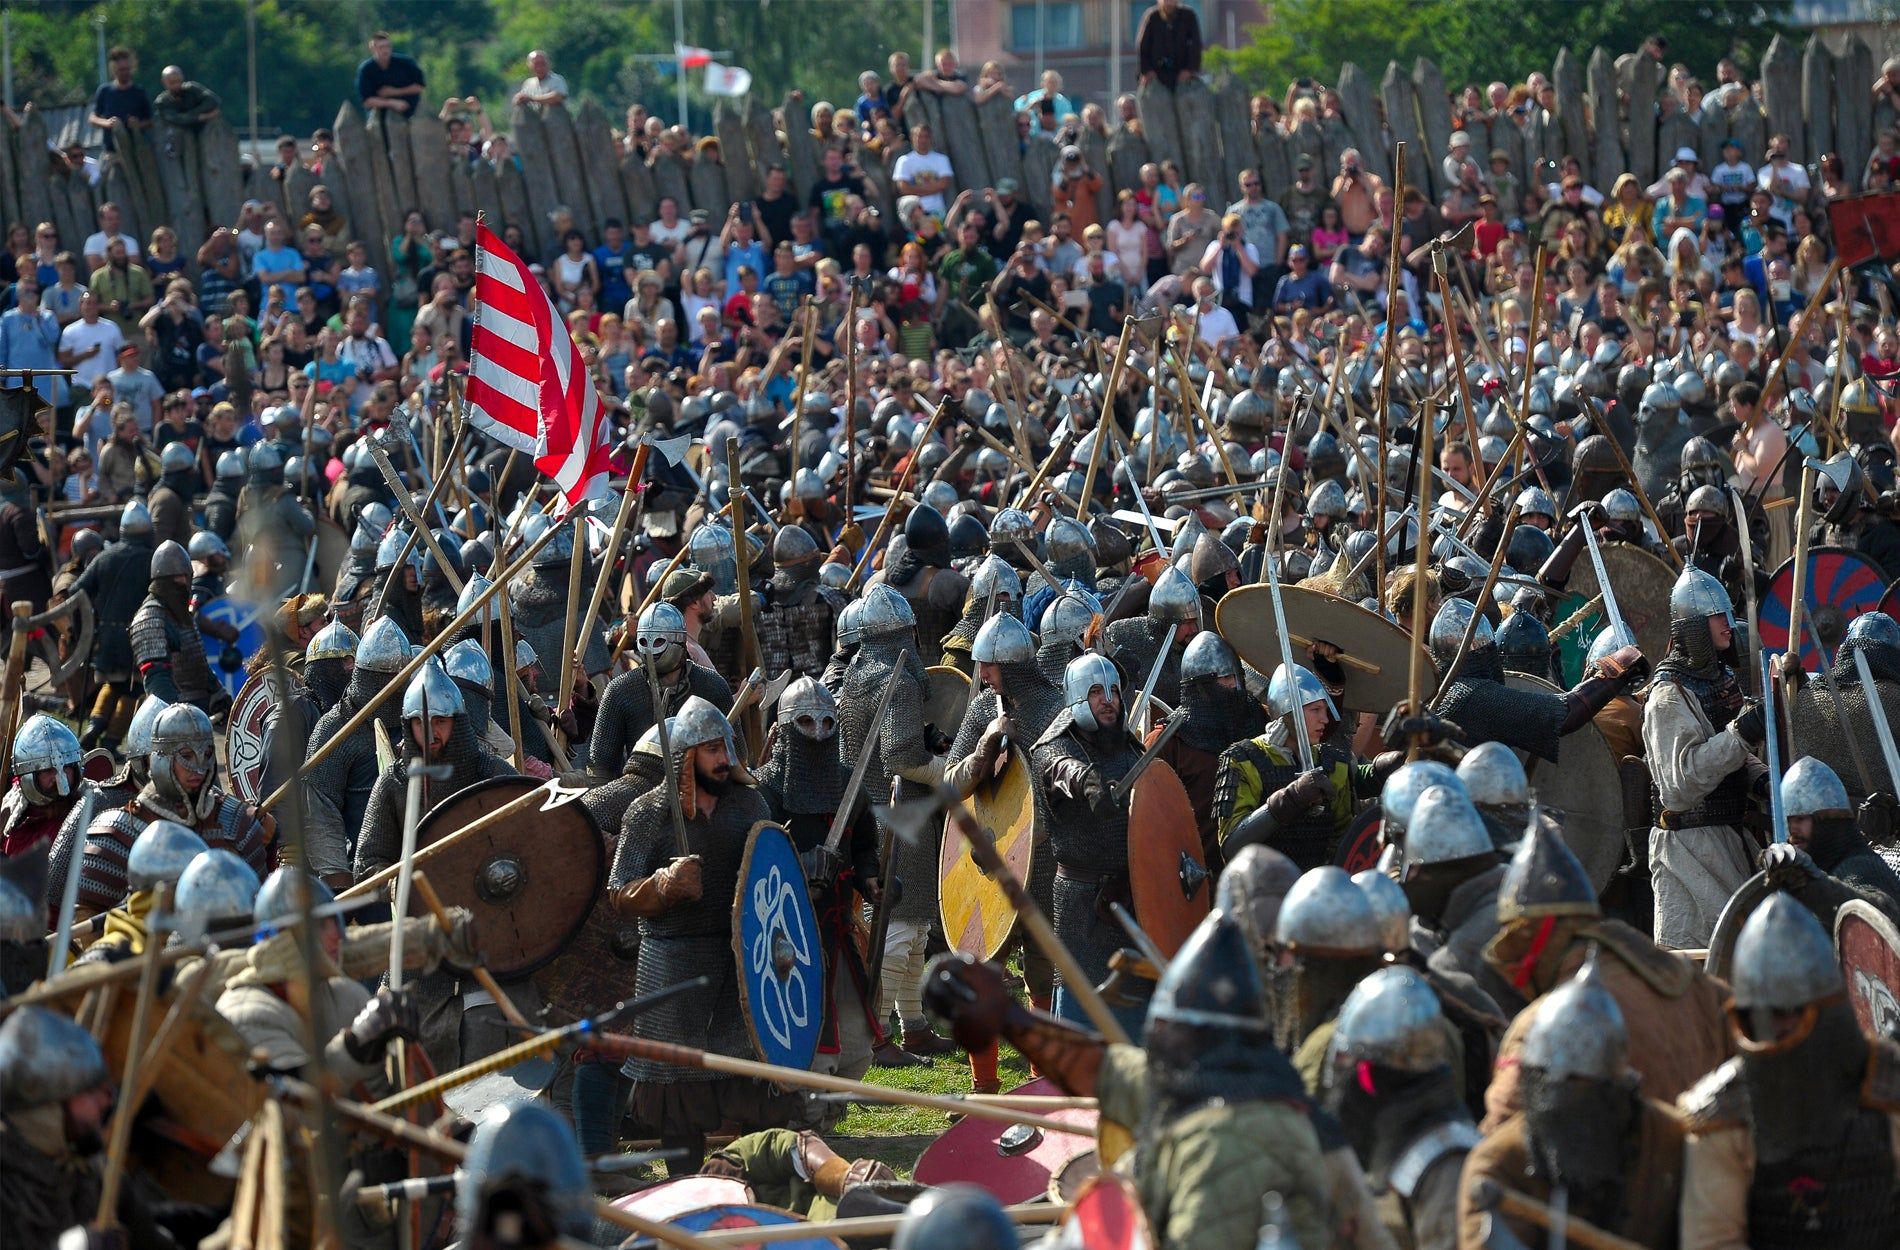 Wolin Festival of Slavs and Vikings 2020 - Poland